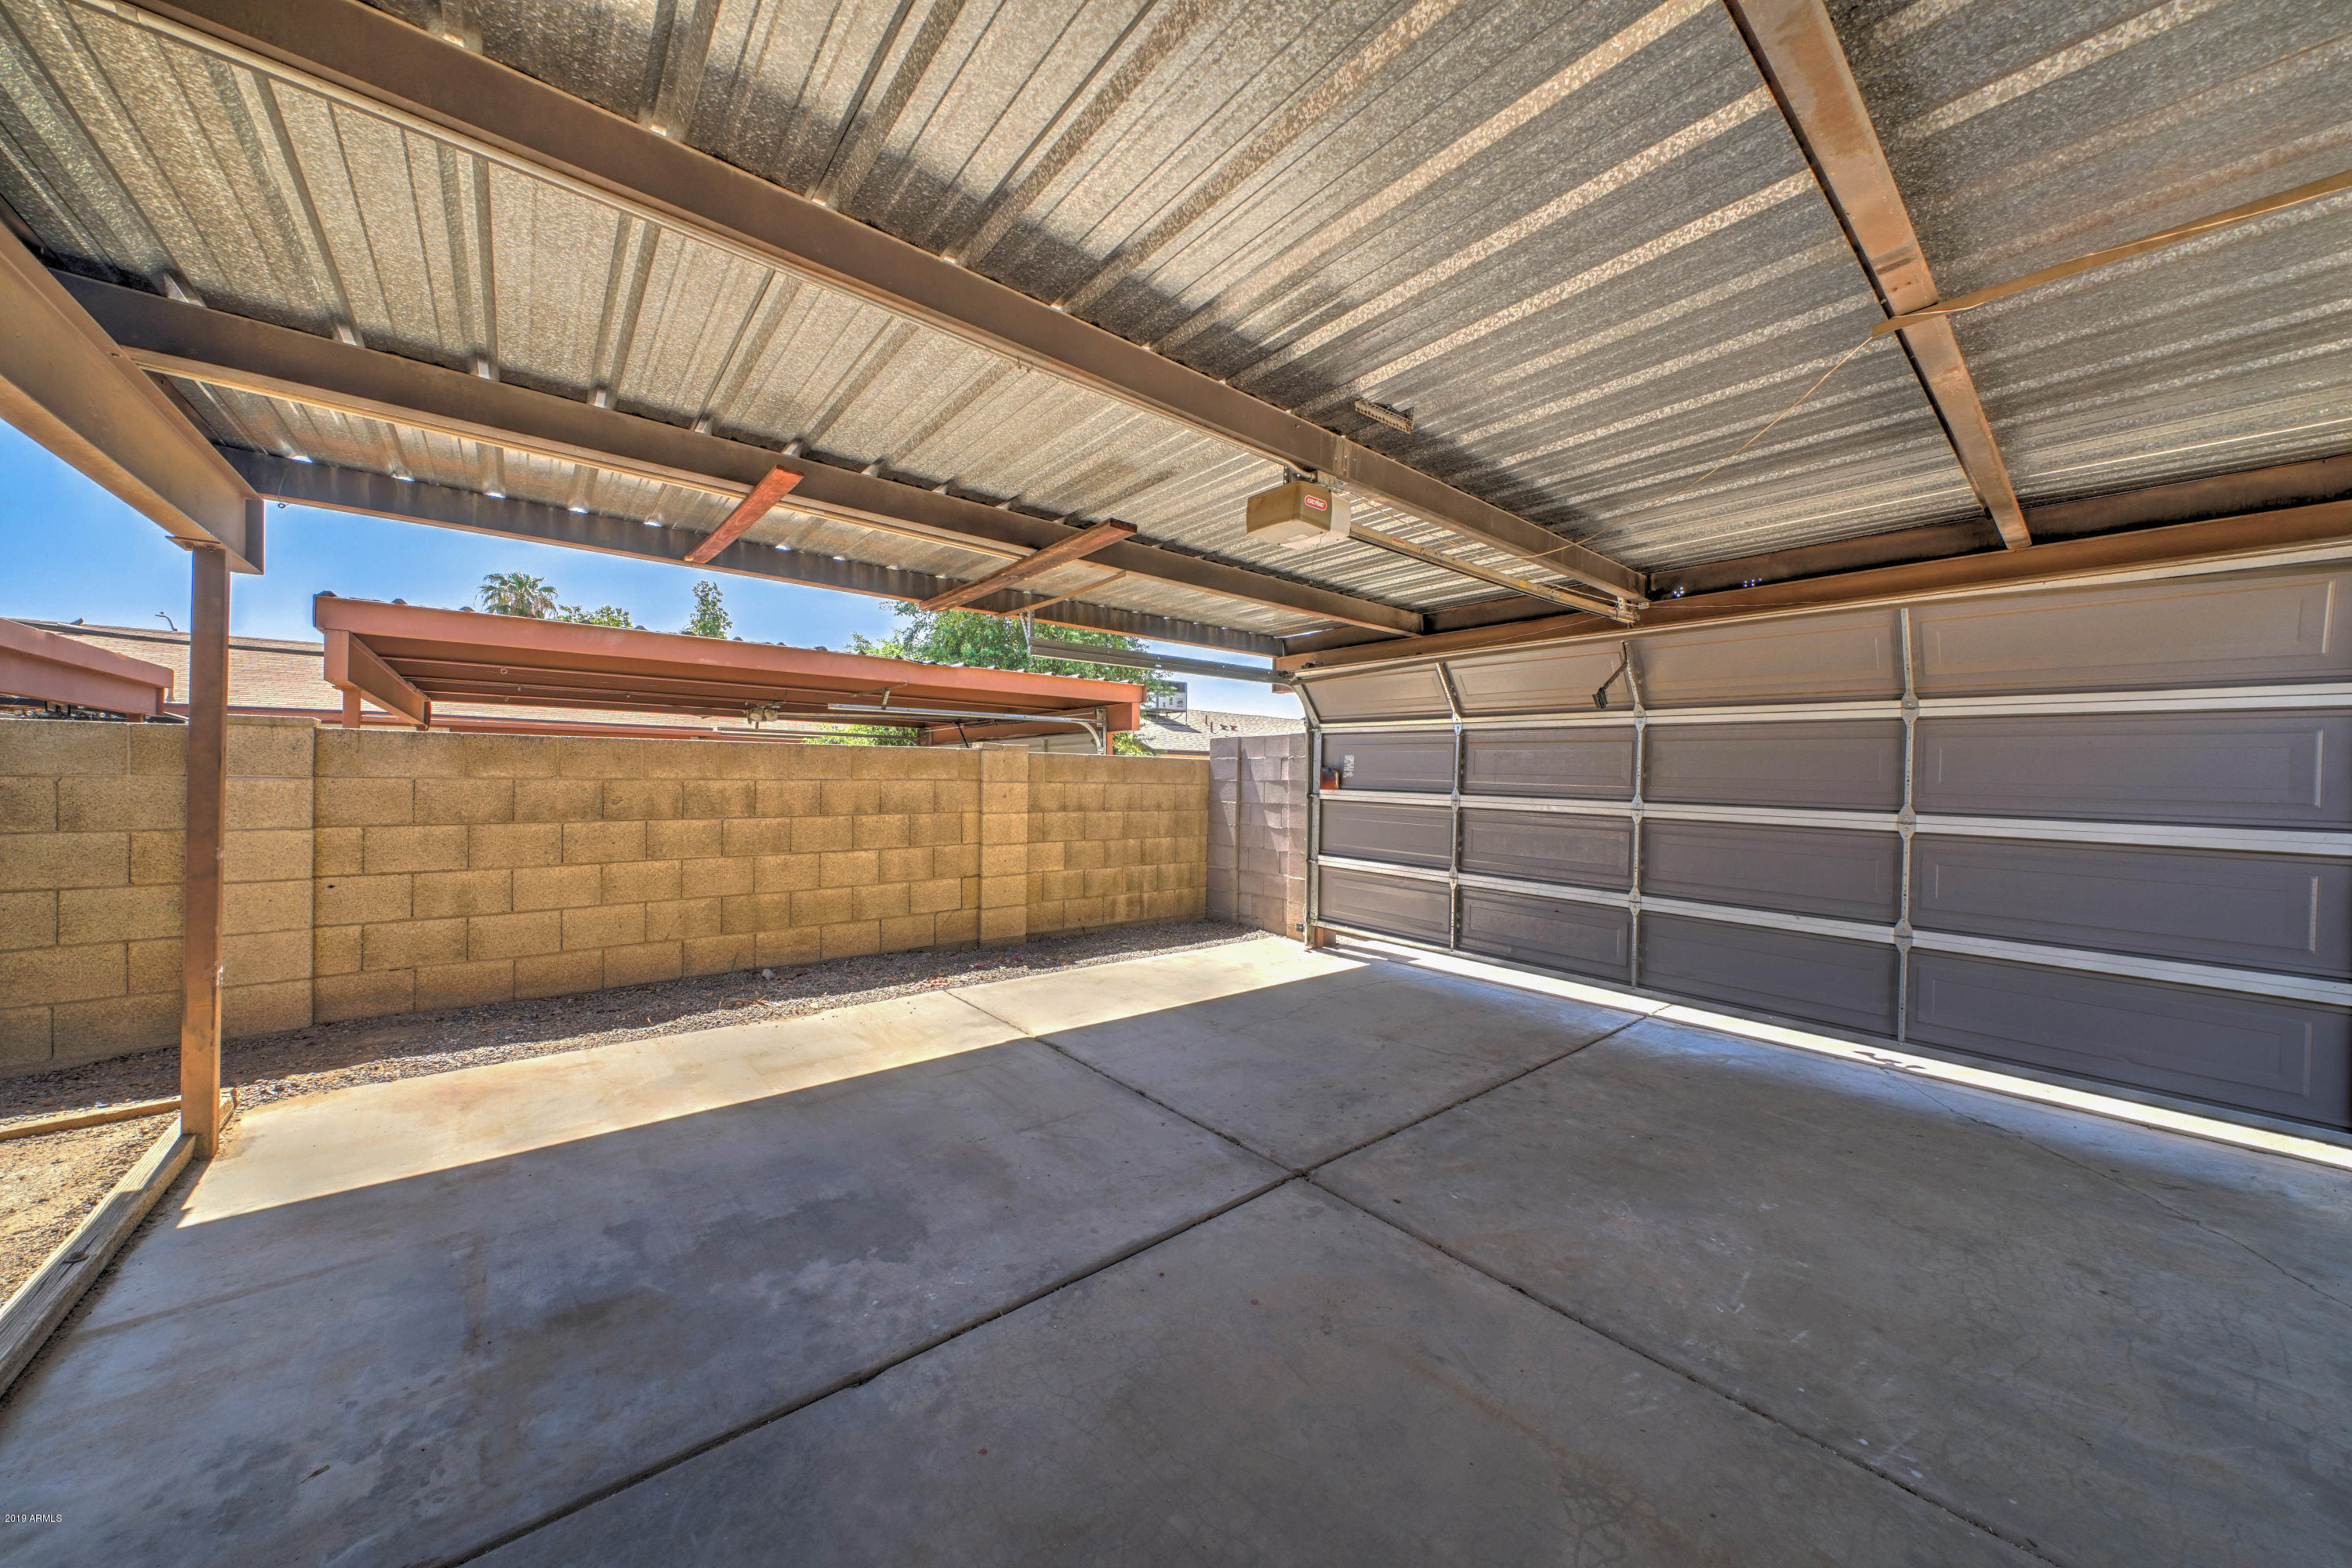 MLS 5972542 5129 W JOAN DE ARC Avenue, Glendale, AZ 85304 Glendale AZ Condo or Townhome